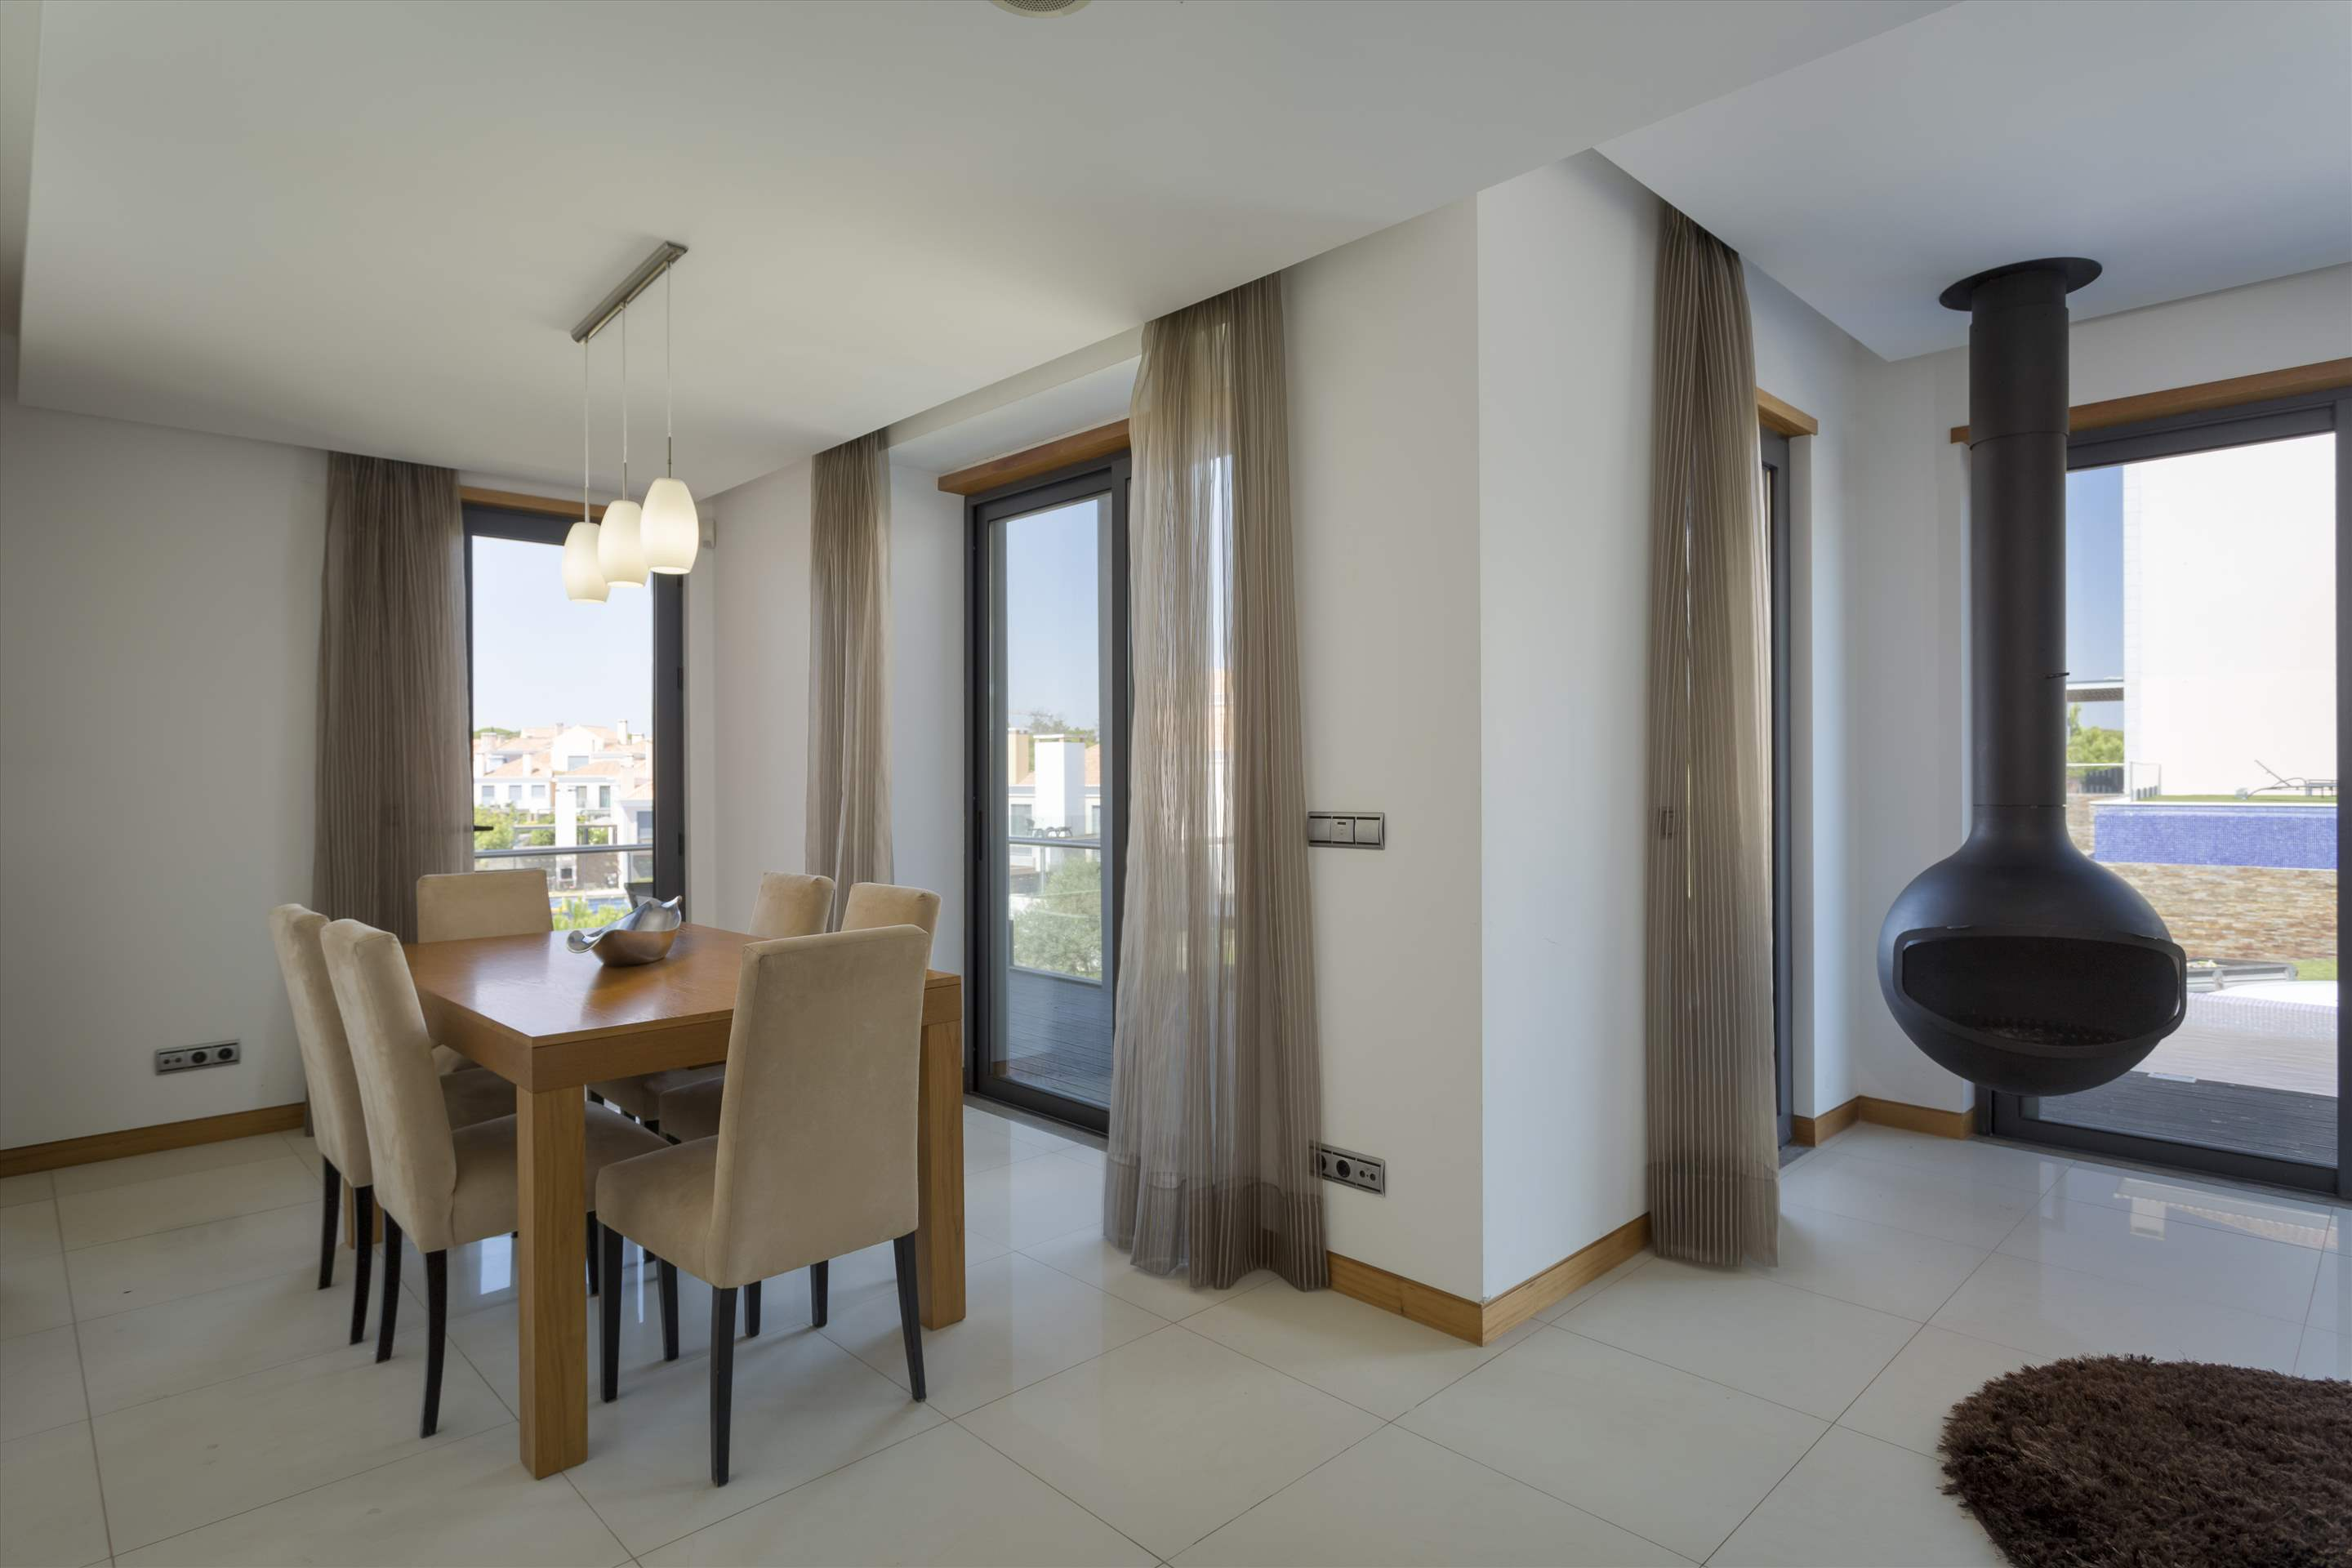 Apartment Fernanda, 2 bedroom apartment in Vale do Lobo, Algarve Photo #4